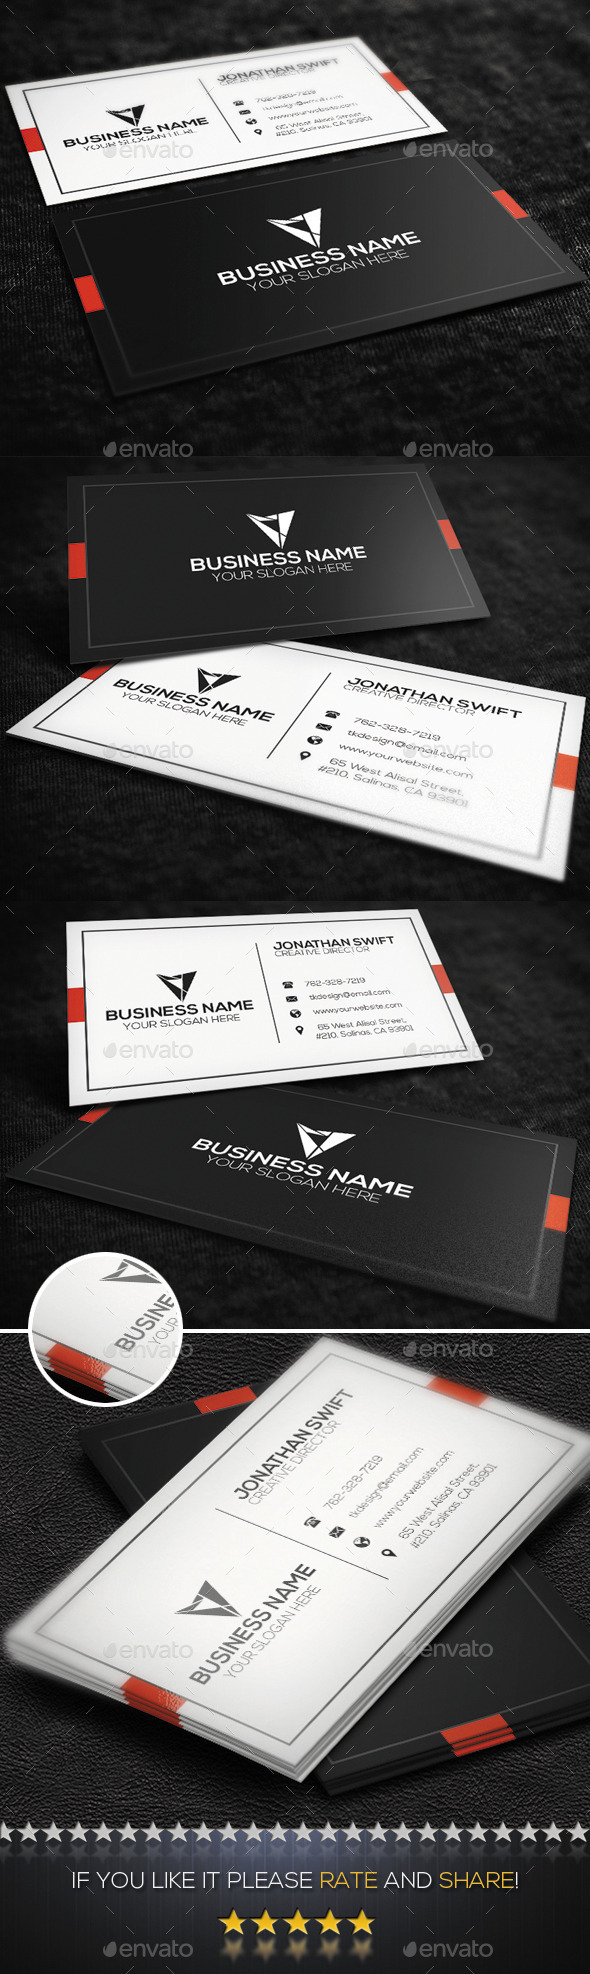 Corporate Business Card No.06 - Corporate Business Cards